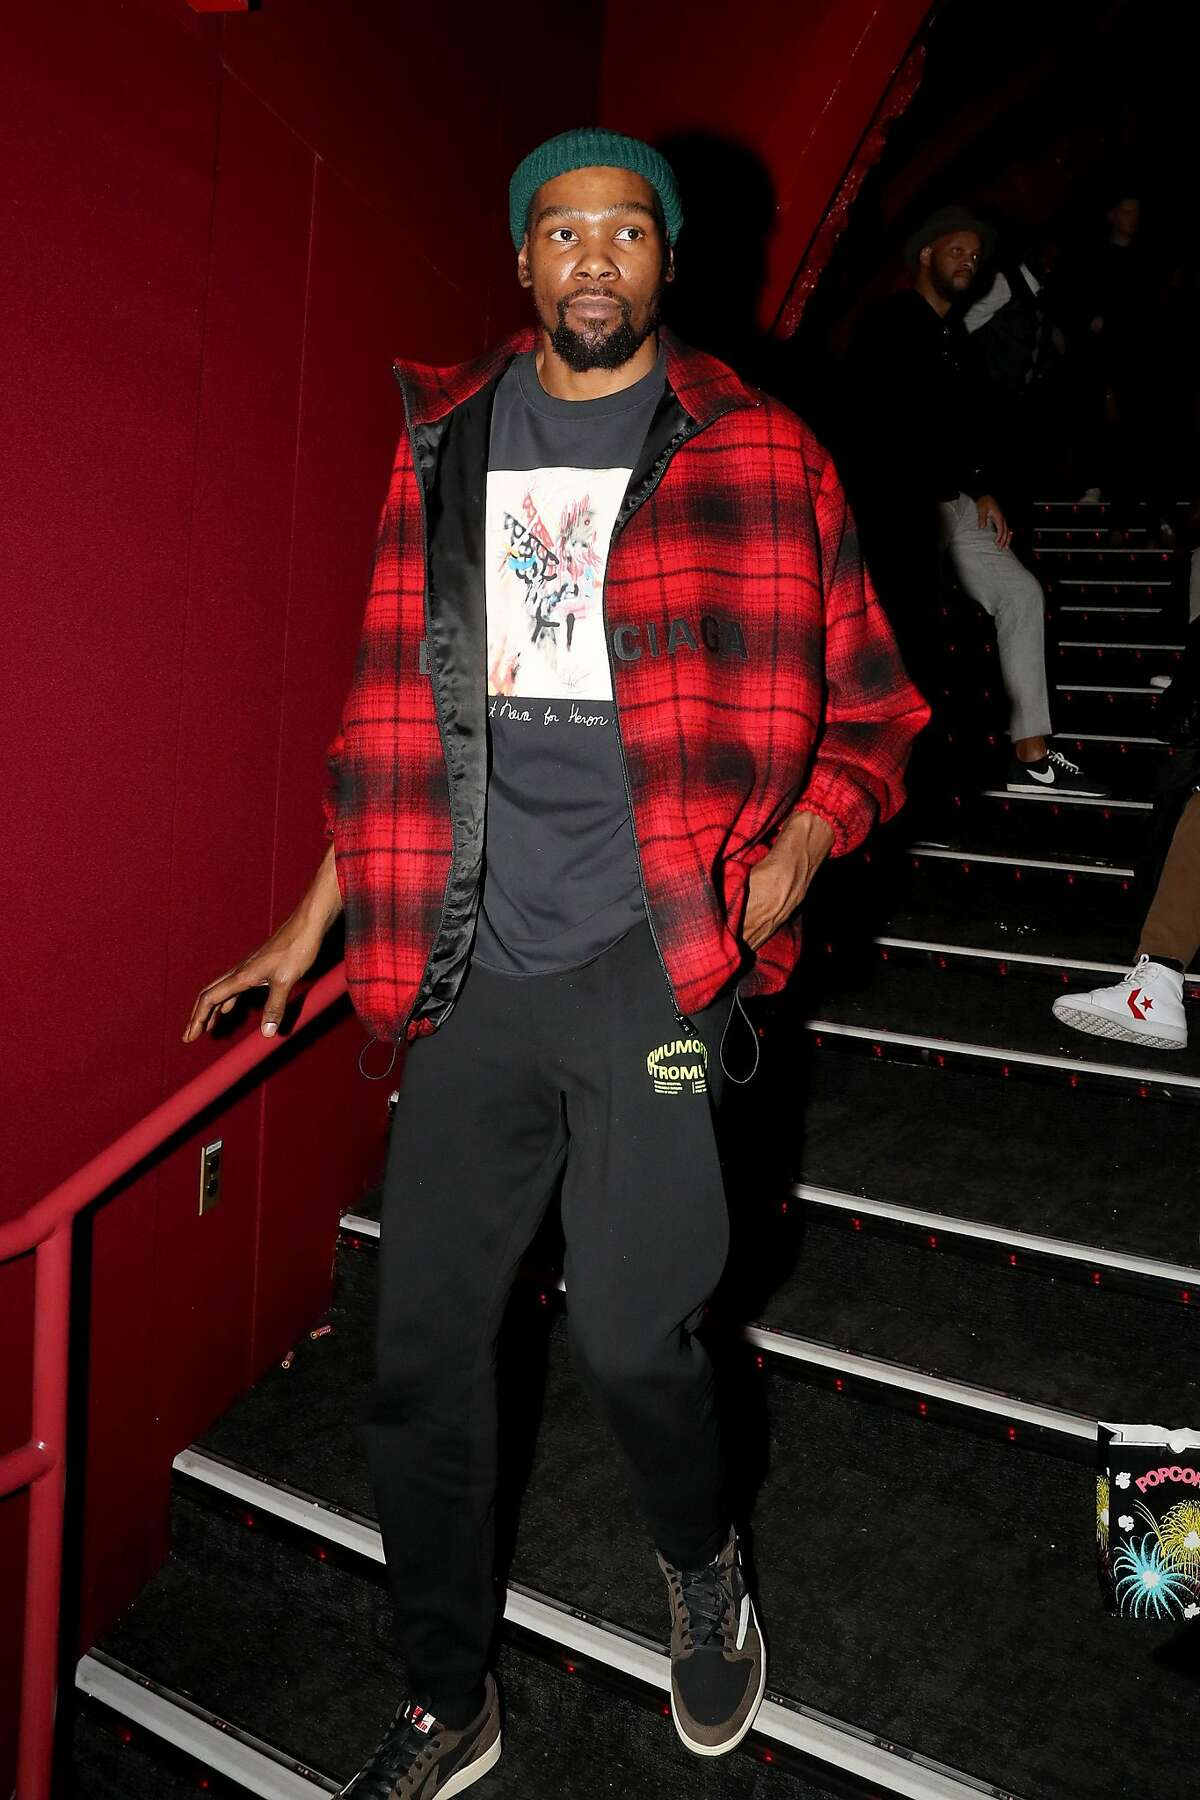 """NEW YORK, NEW YORK - MARCH 05: Kevin Durant attends the premiere of """"A Kid From Coney Island"""" at Brooklyn Academy of Music on March 05, 2020 in New York City. (Photo by Johnny Nunez/Getty Images for 1091)"""